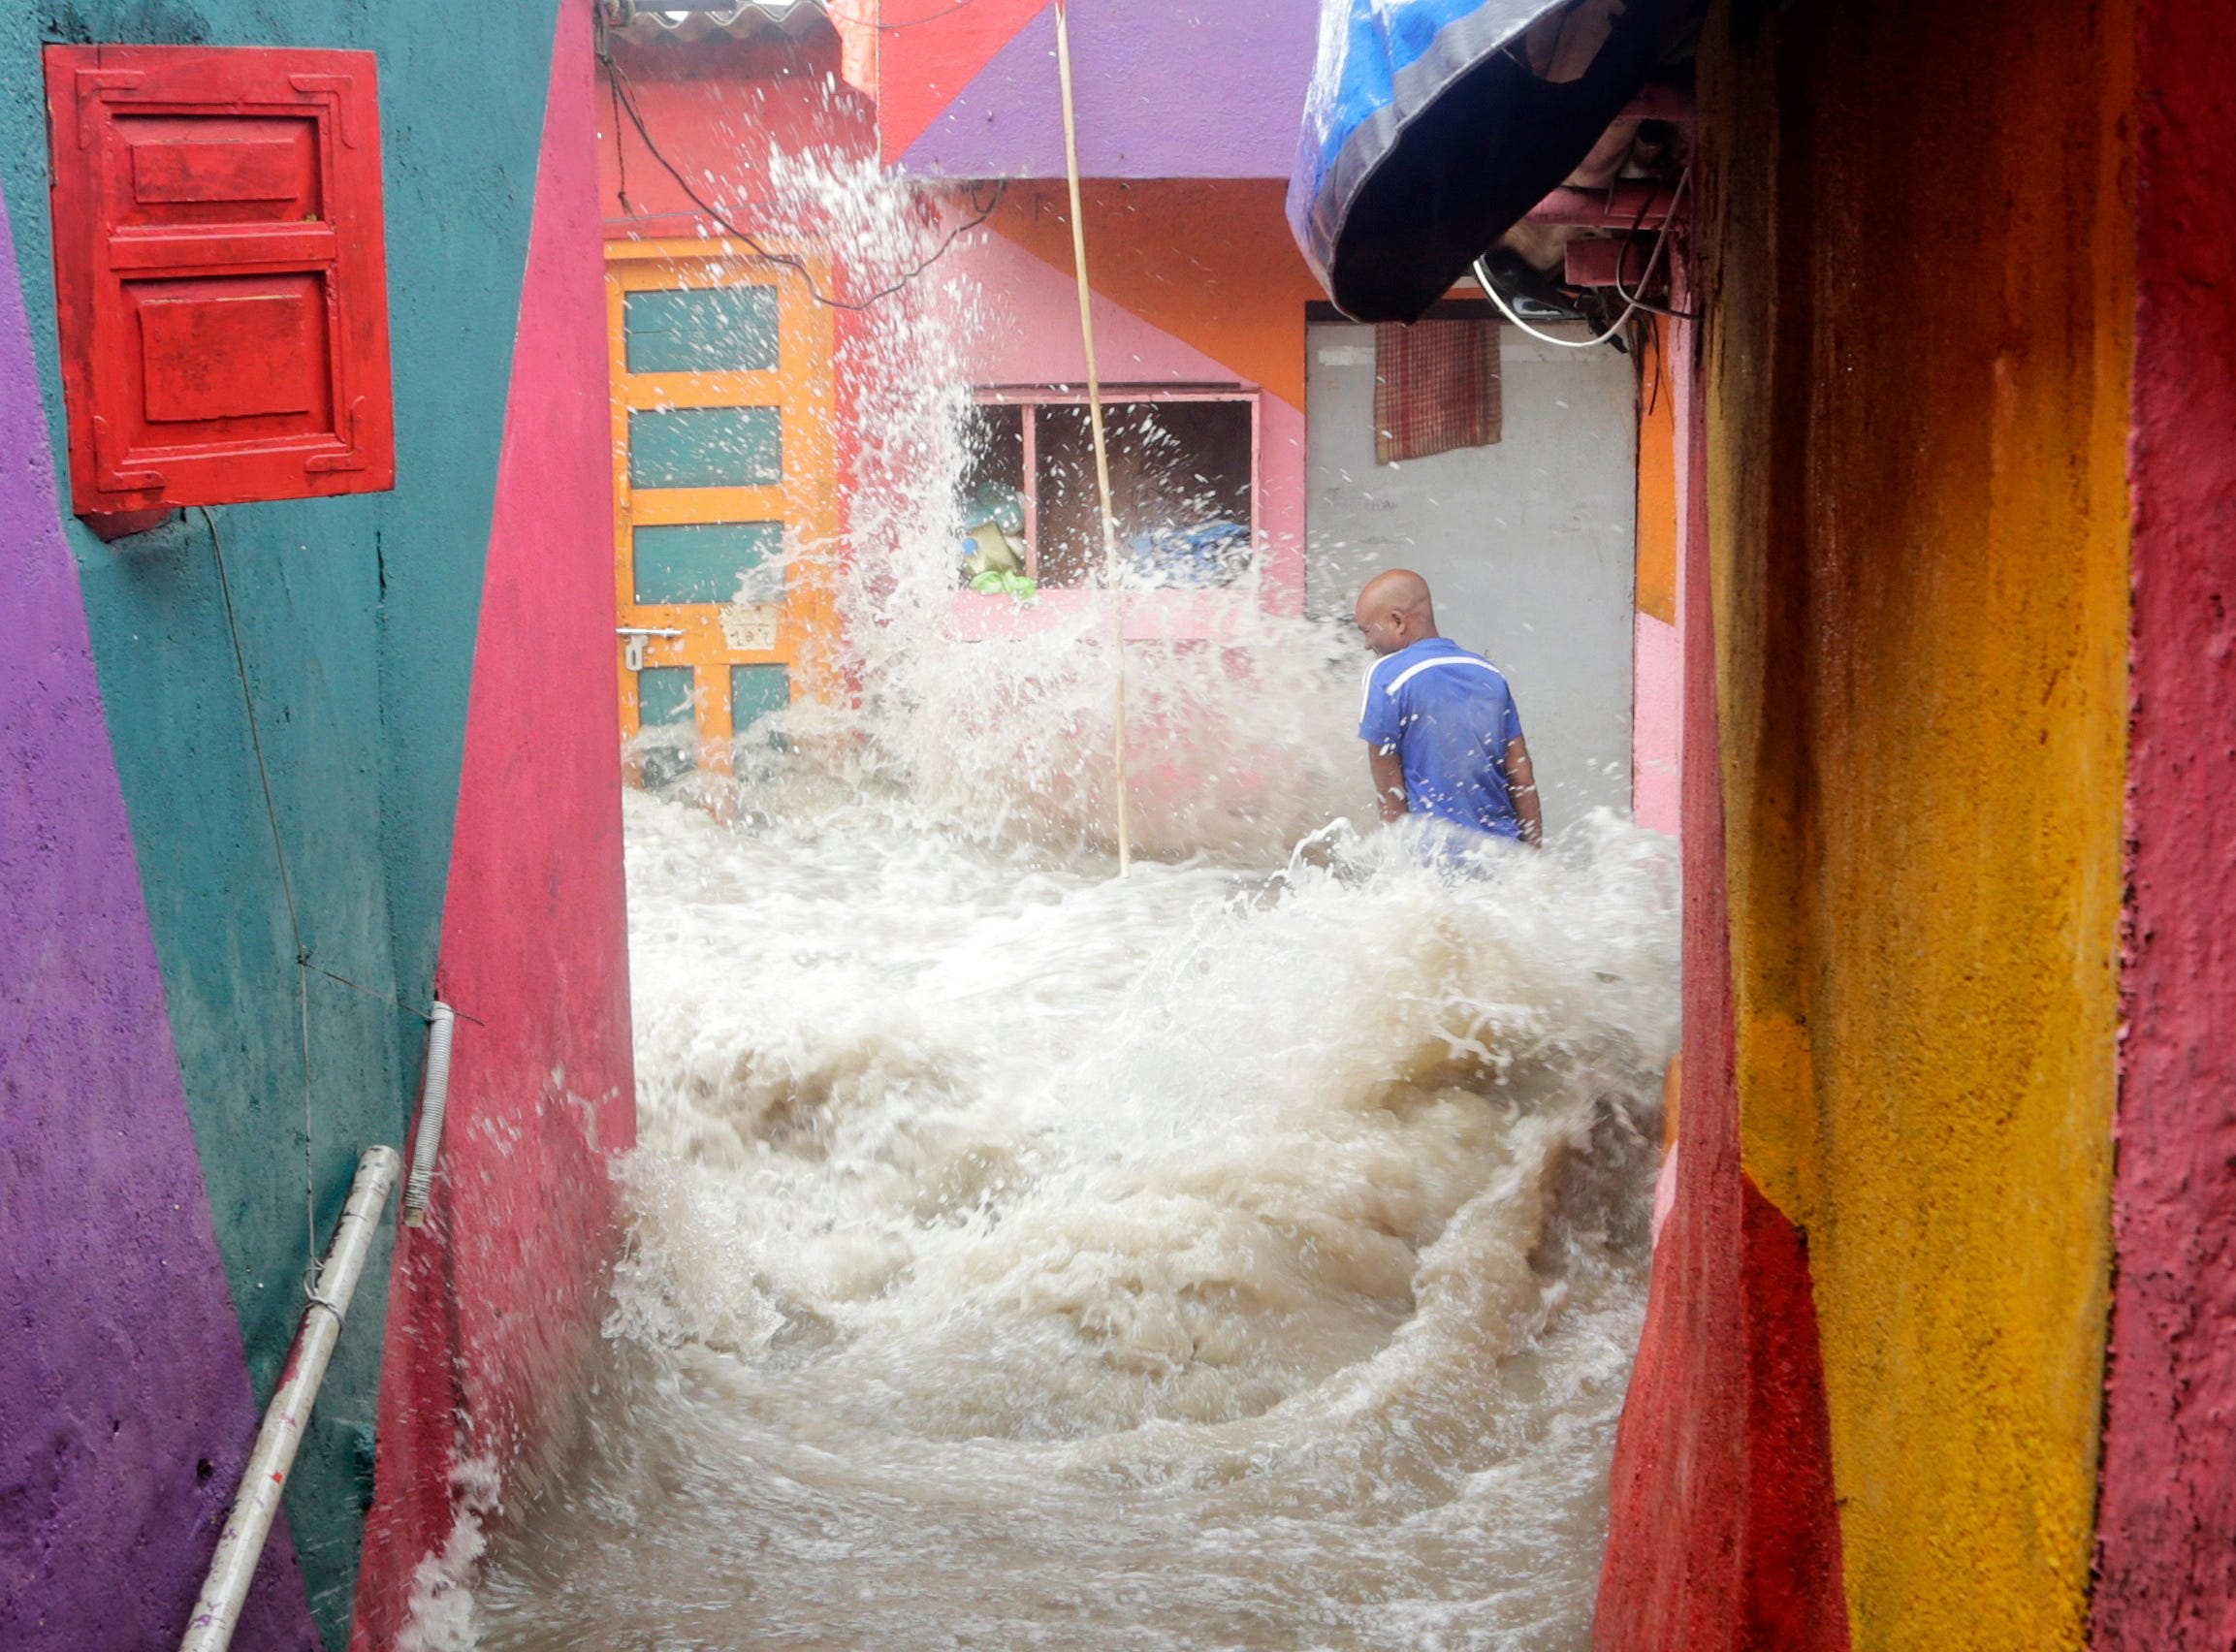 July 14, 2018: Waves caused by high tide envelope a man standing outside his house near the Arabian Sea in Mumbai, India.